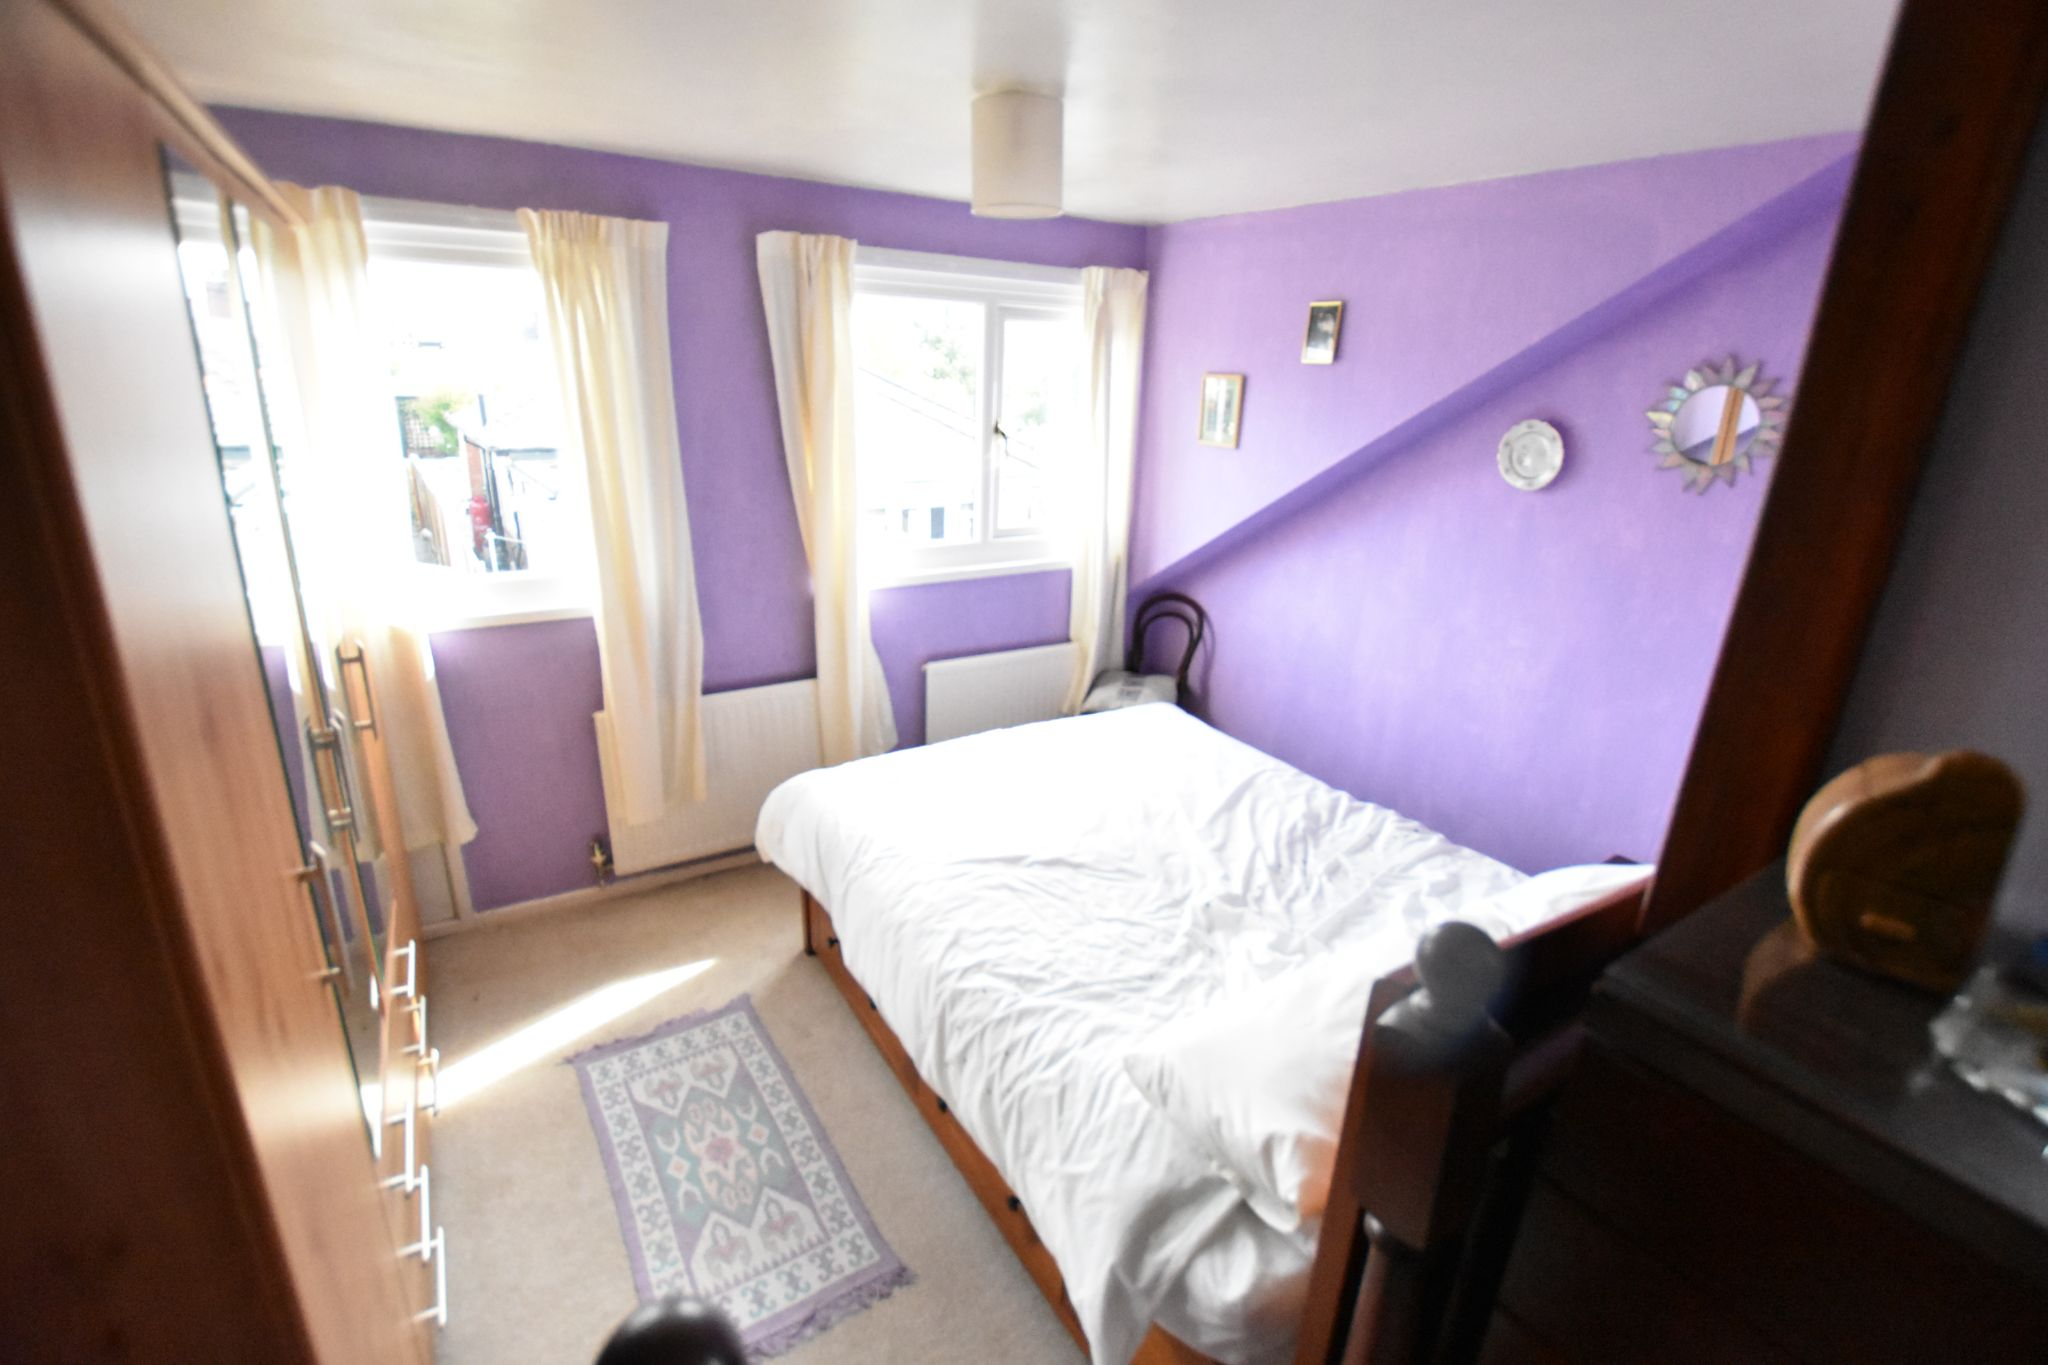 Image 2 of 4 of BEDROOM 2, on Accommodation Comprising for